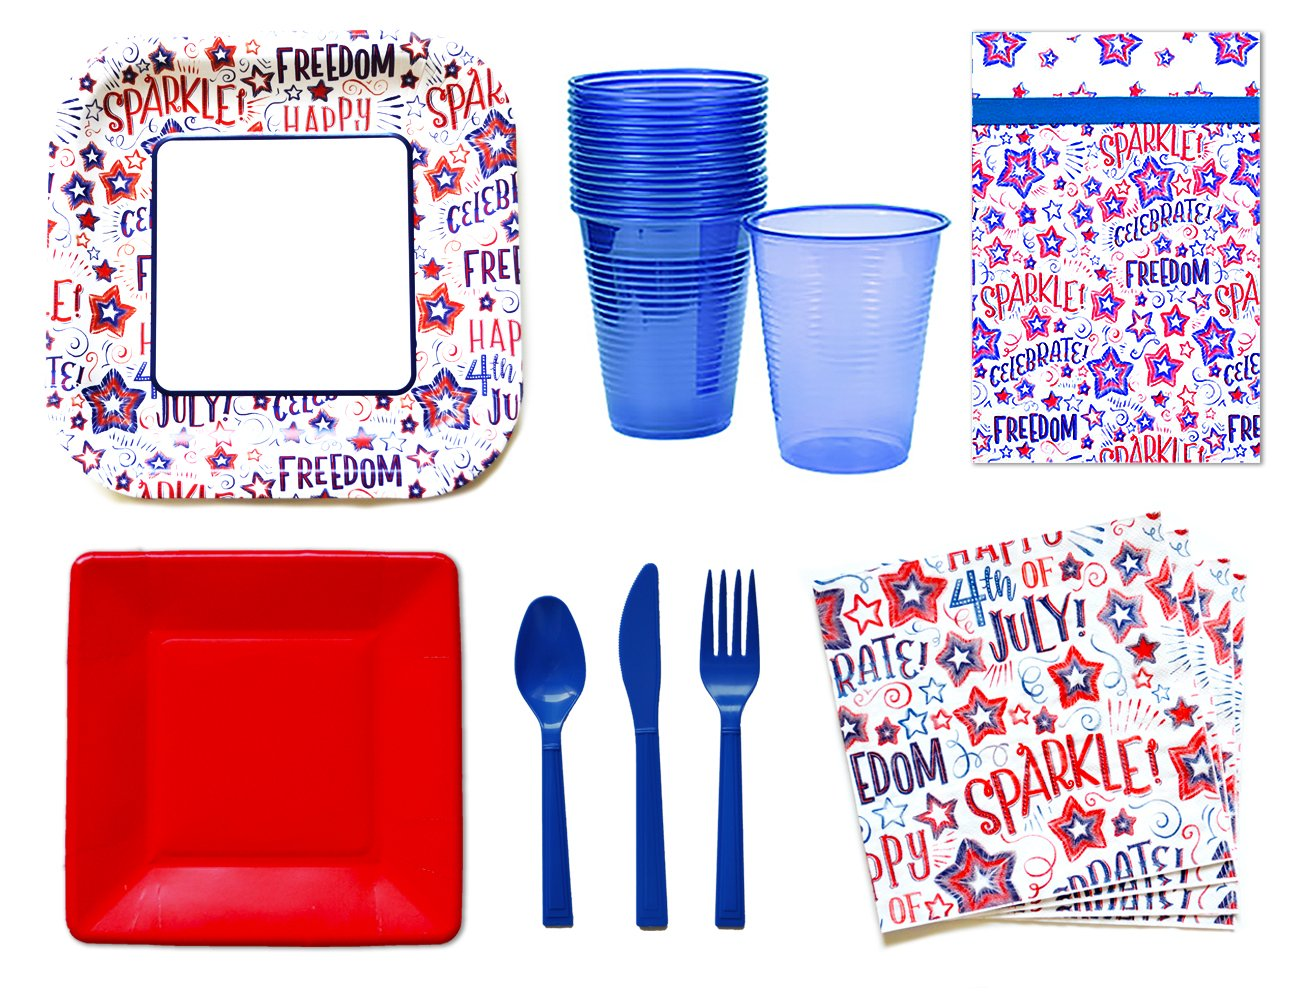 July 4th Party Supplies - Patriotic Party Supplies Set - 4th of July Party Supplies -14 Guests - Plates Napkins Cups Cutlery and Table Cover by Finley Party Supplies (Image #1)